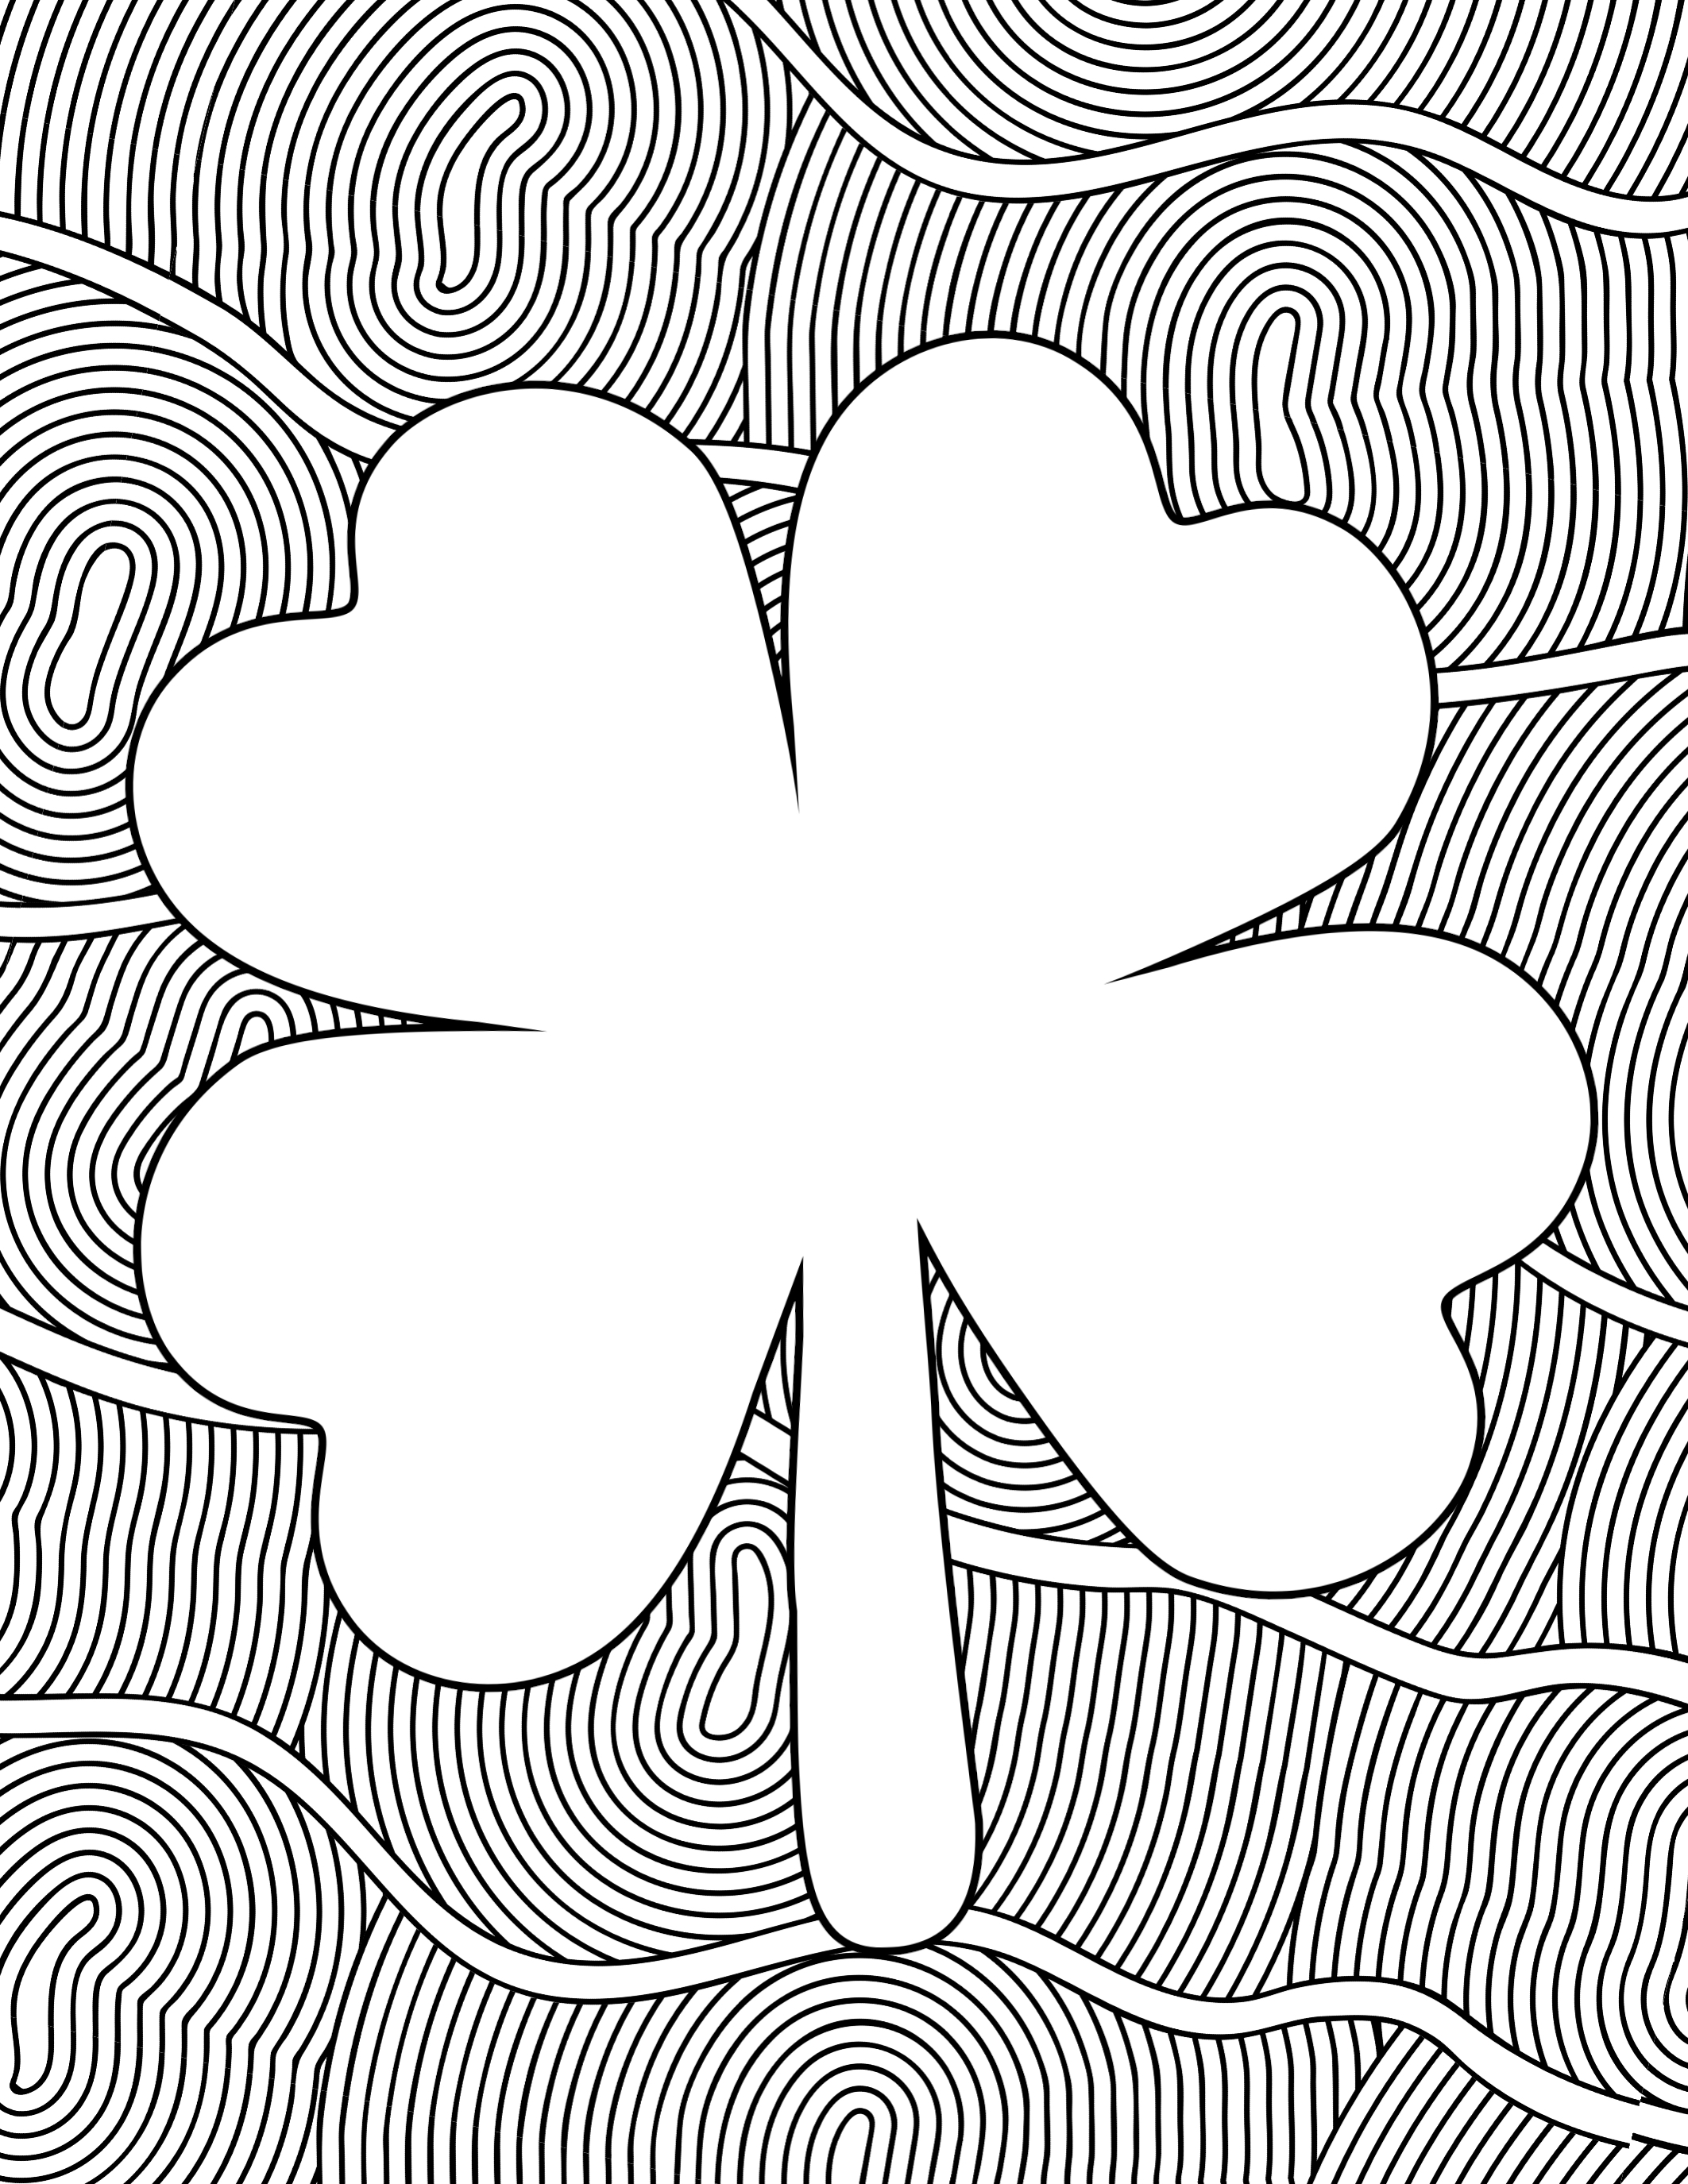 Free Printable St. Patrick's Day Coloring Pages | i should be ... | 2750x2125